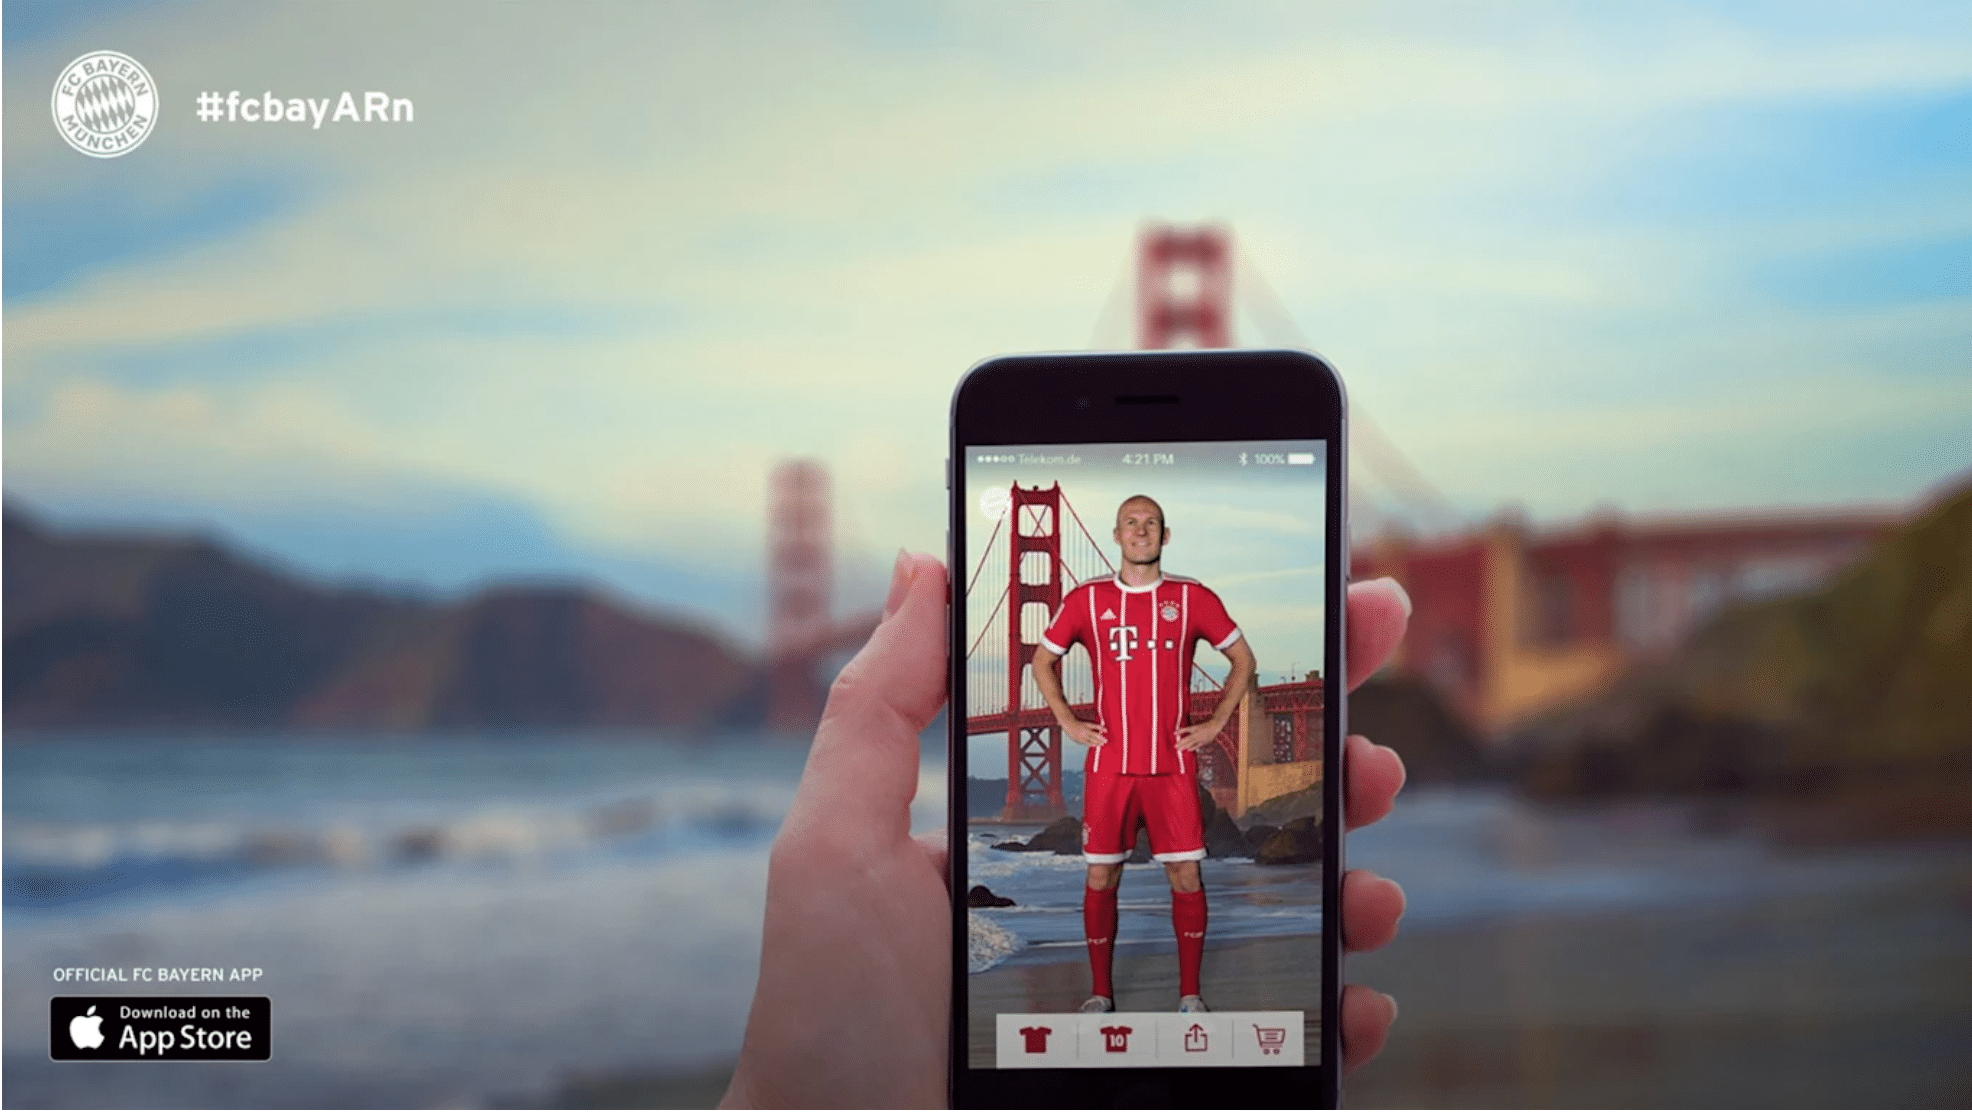 We love this sport marketing campaign from 2017. Bayern Munchen launched the first augmented reality app.